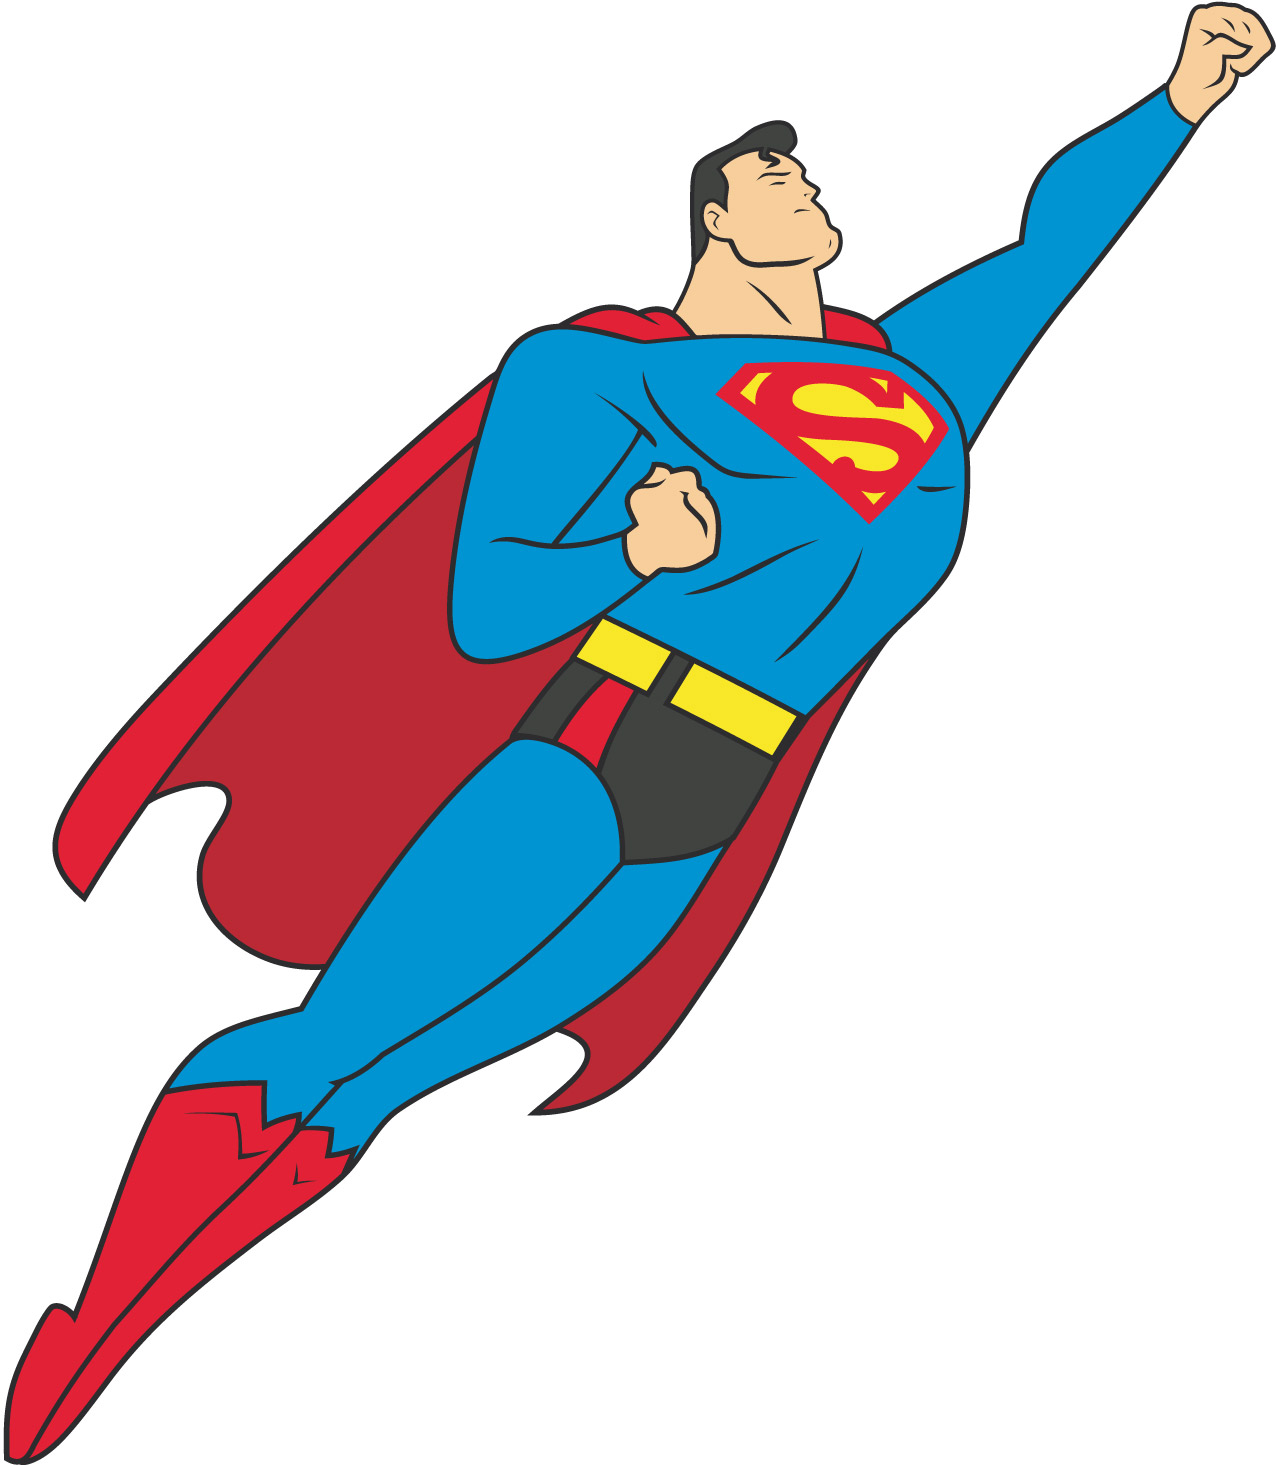 Superman crushing clipart jpg black and white library Free Superman Cliparts, Download Free Clip Art, Free Clip ... jpg black and white library